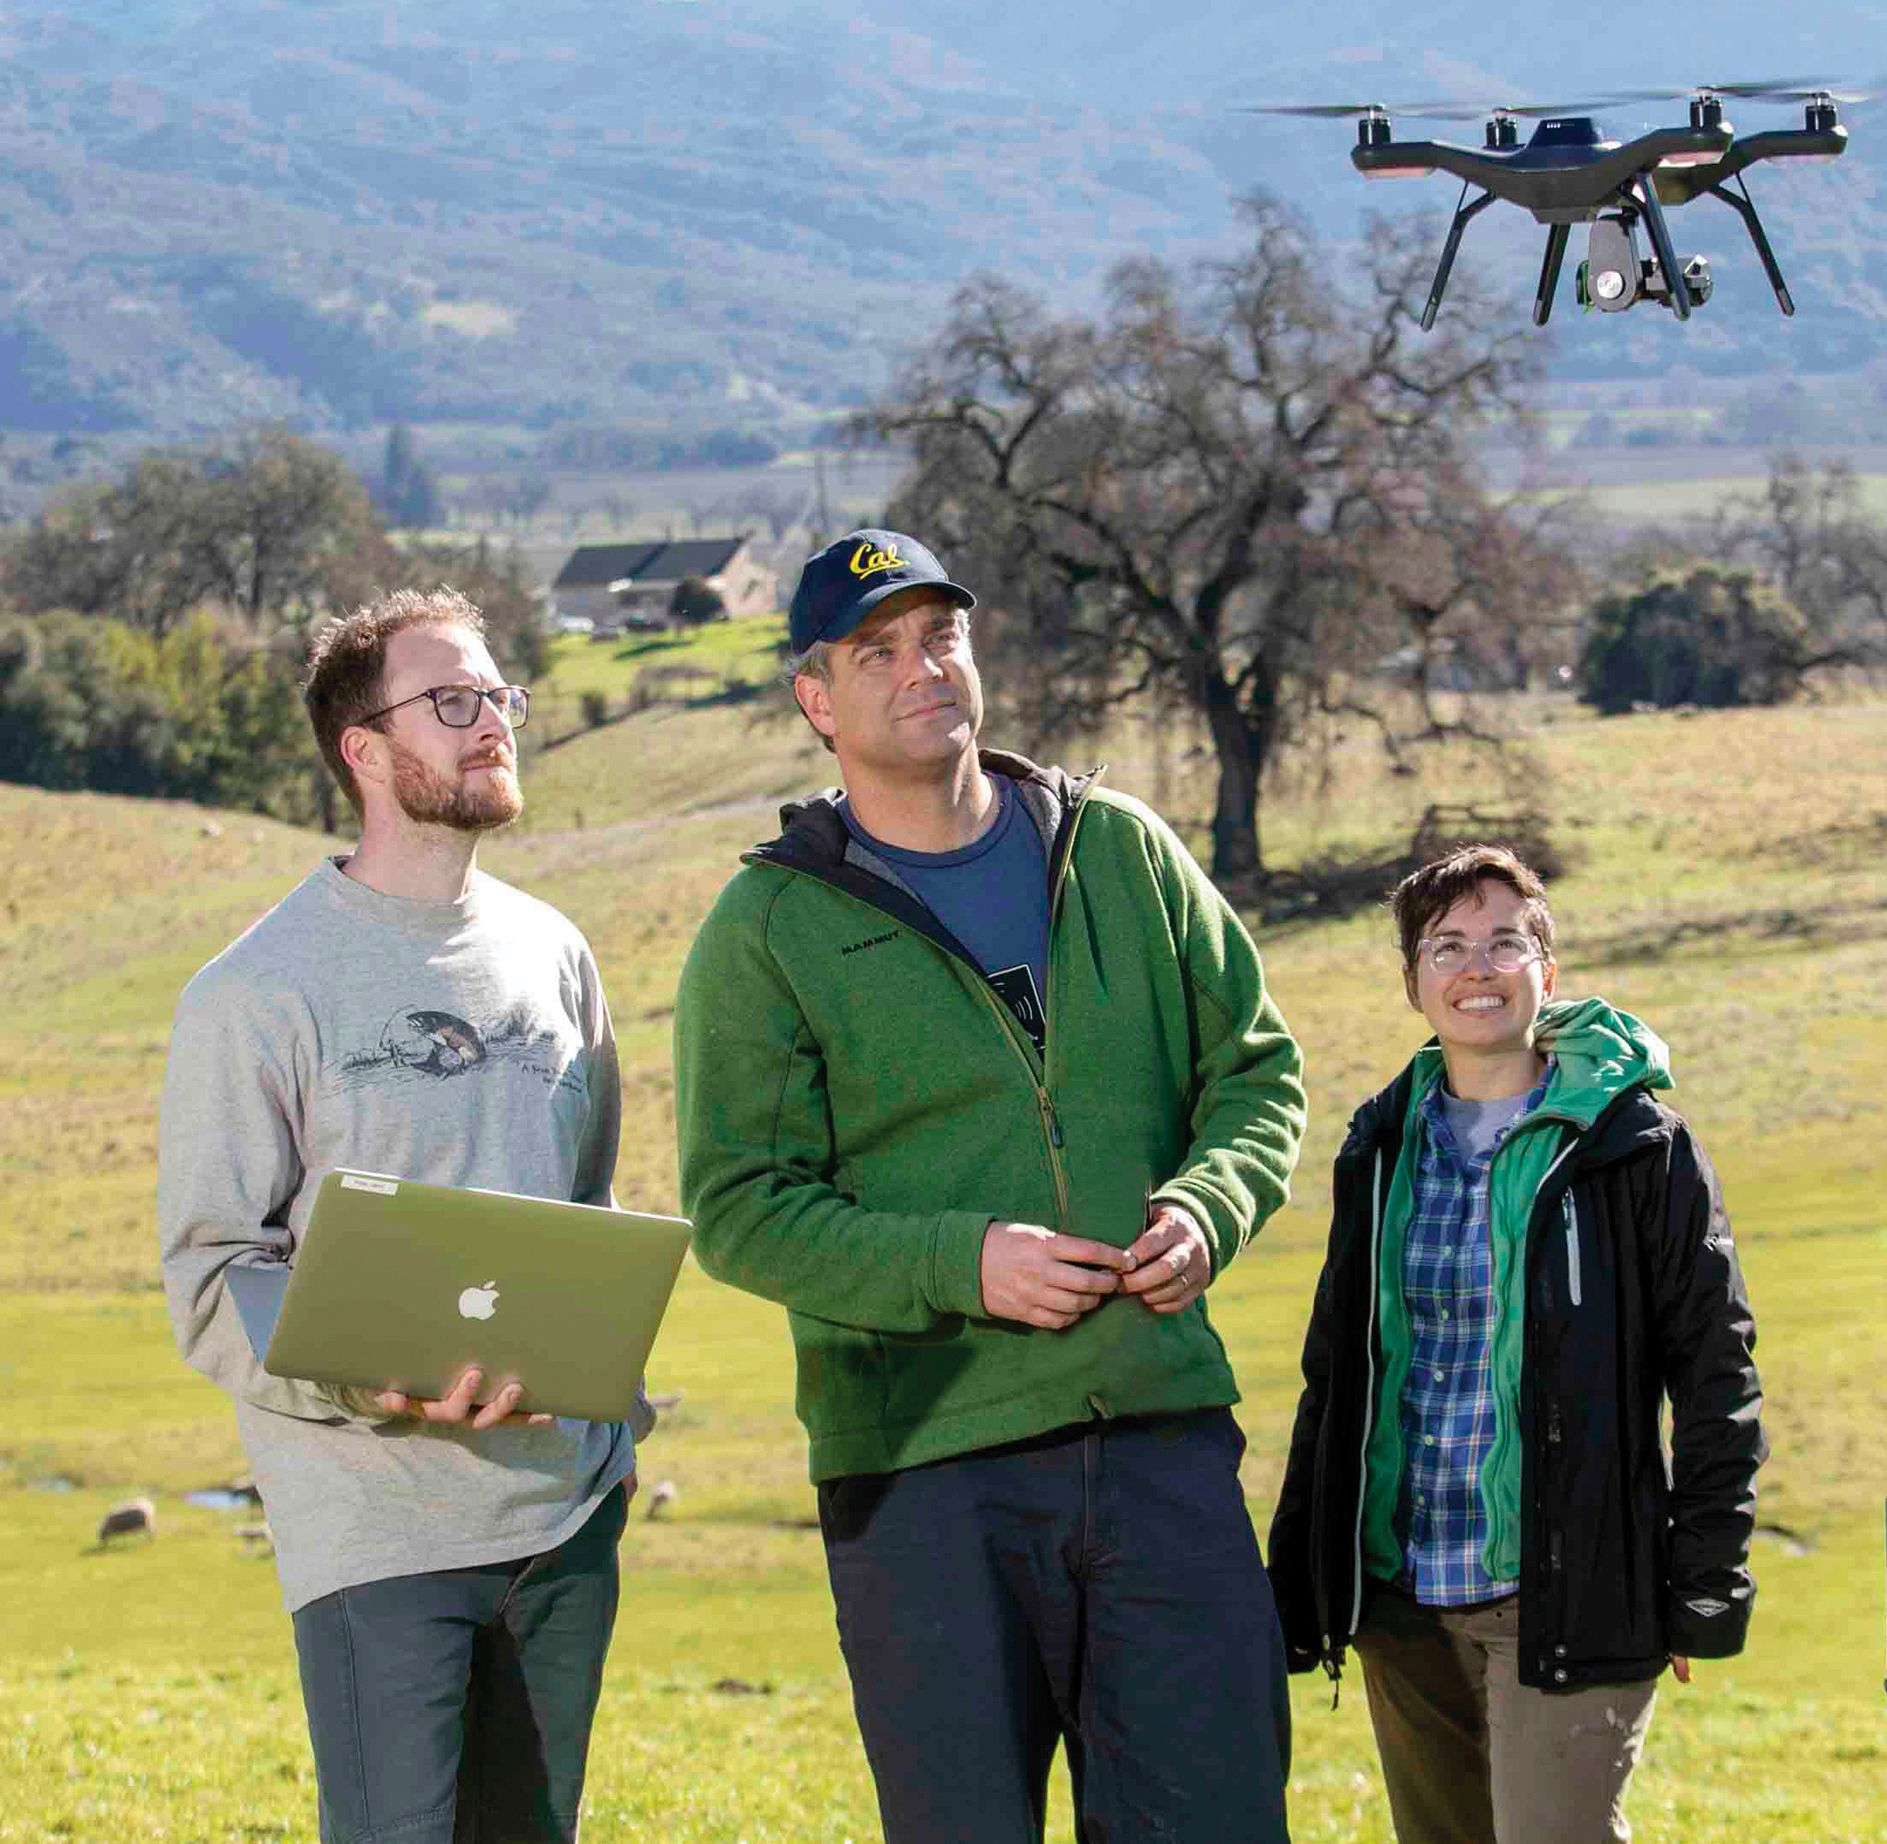 researchers with a drone